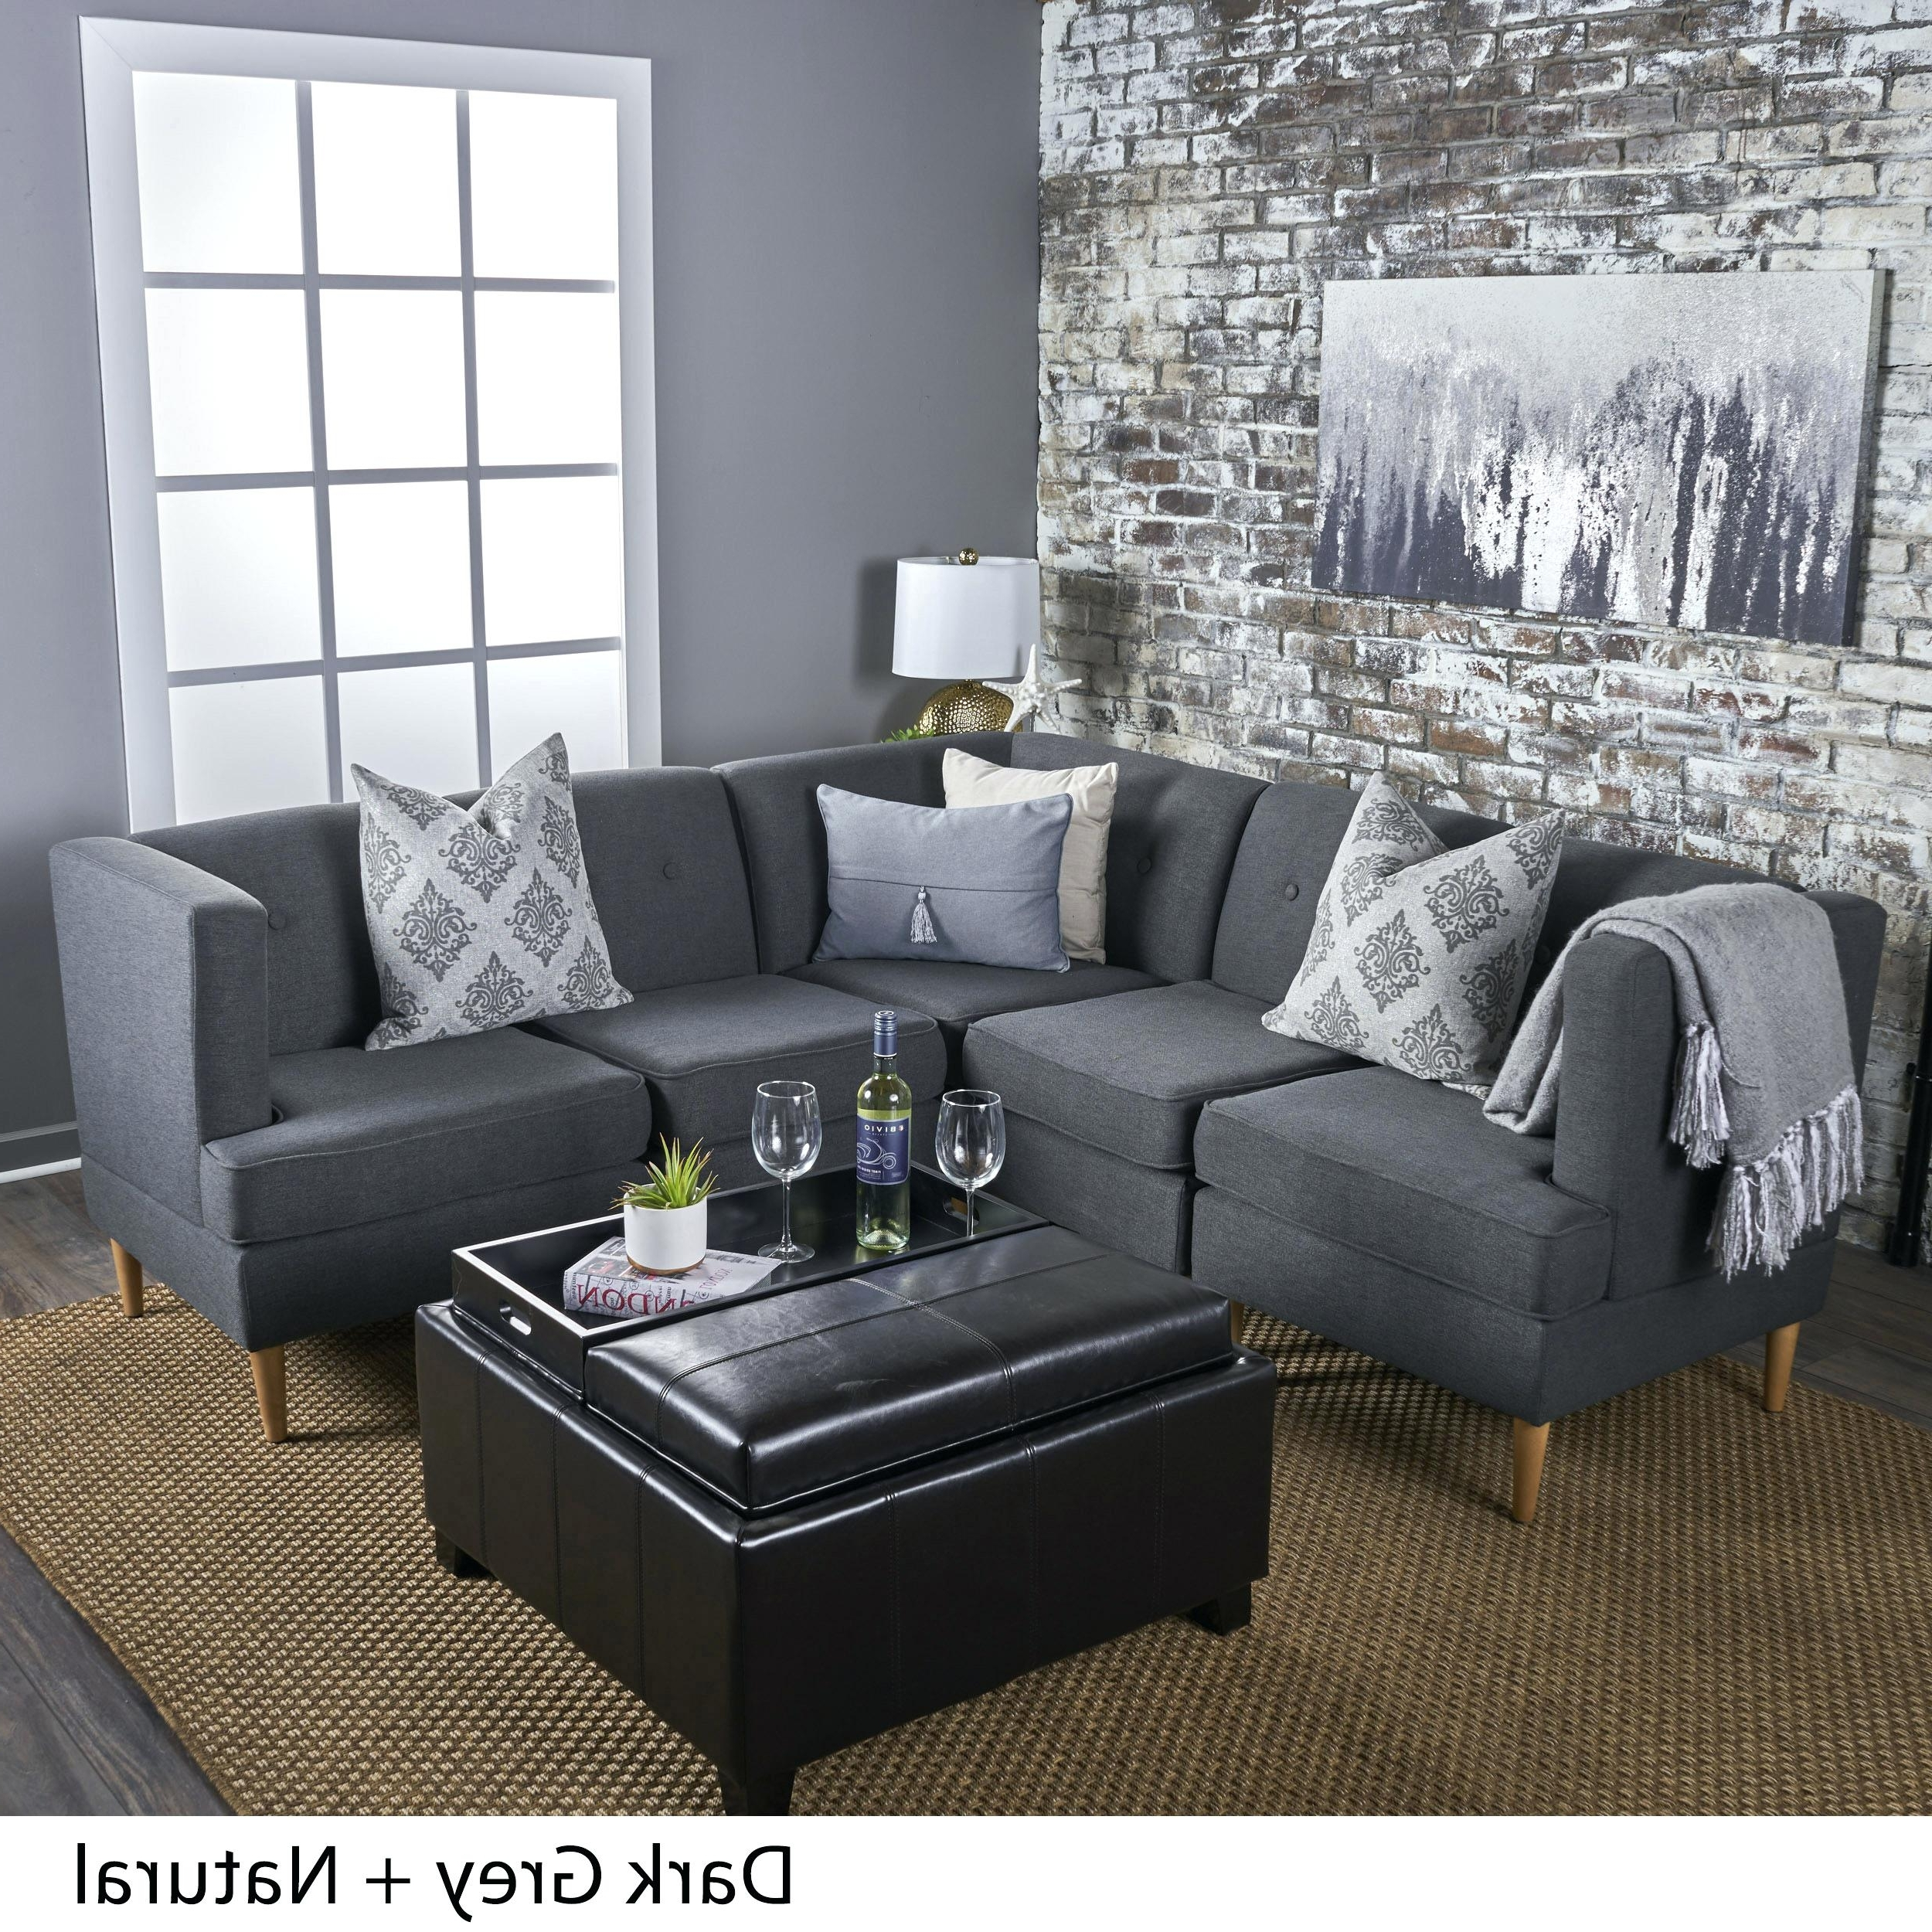 Sectional Sofas At Sears Within Most Popular Sears Sectional Sofa Sa Clearwater Natuzzi Sleeper (View 4 of 15)